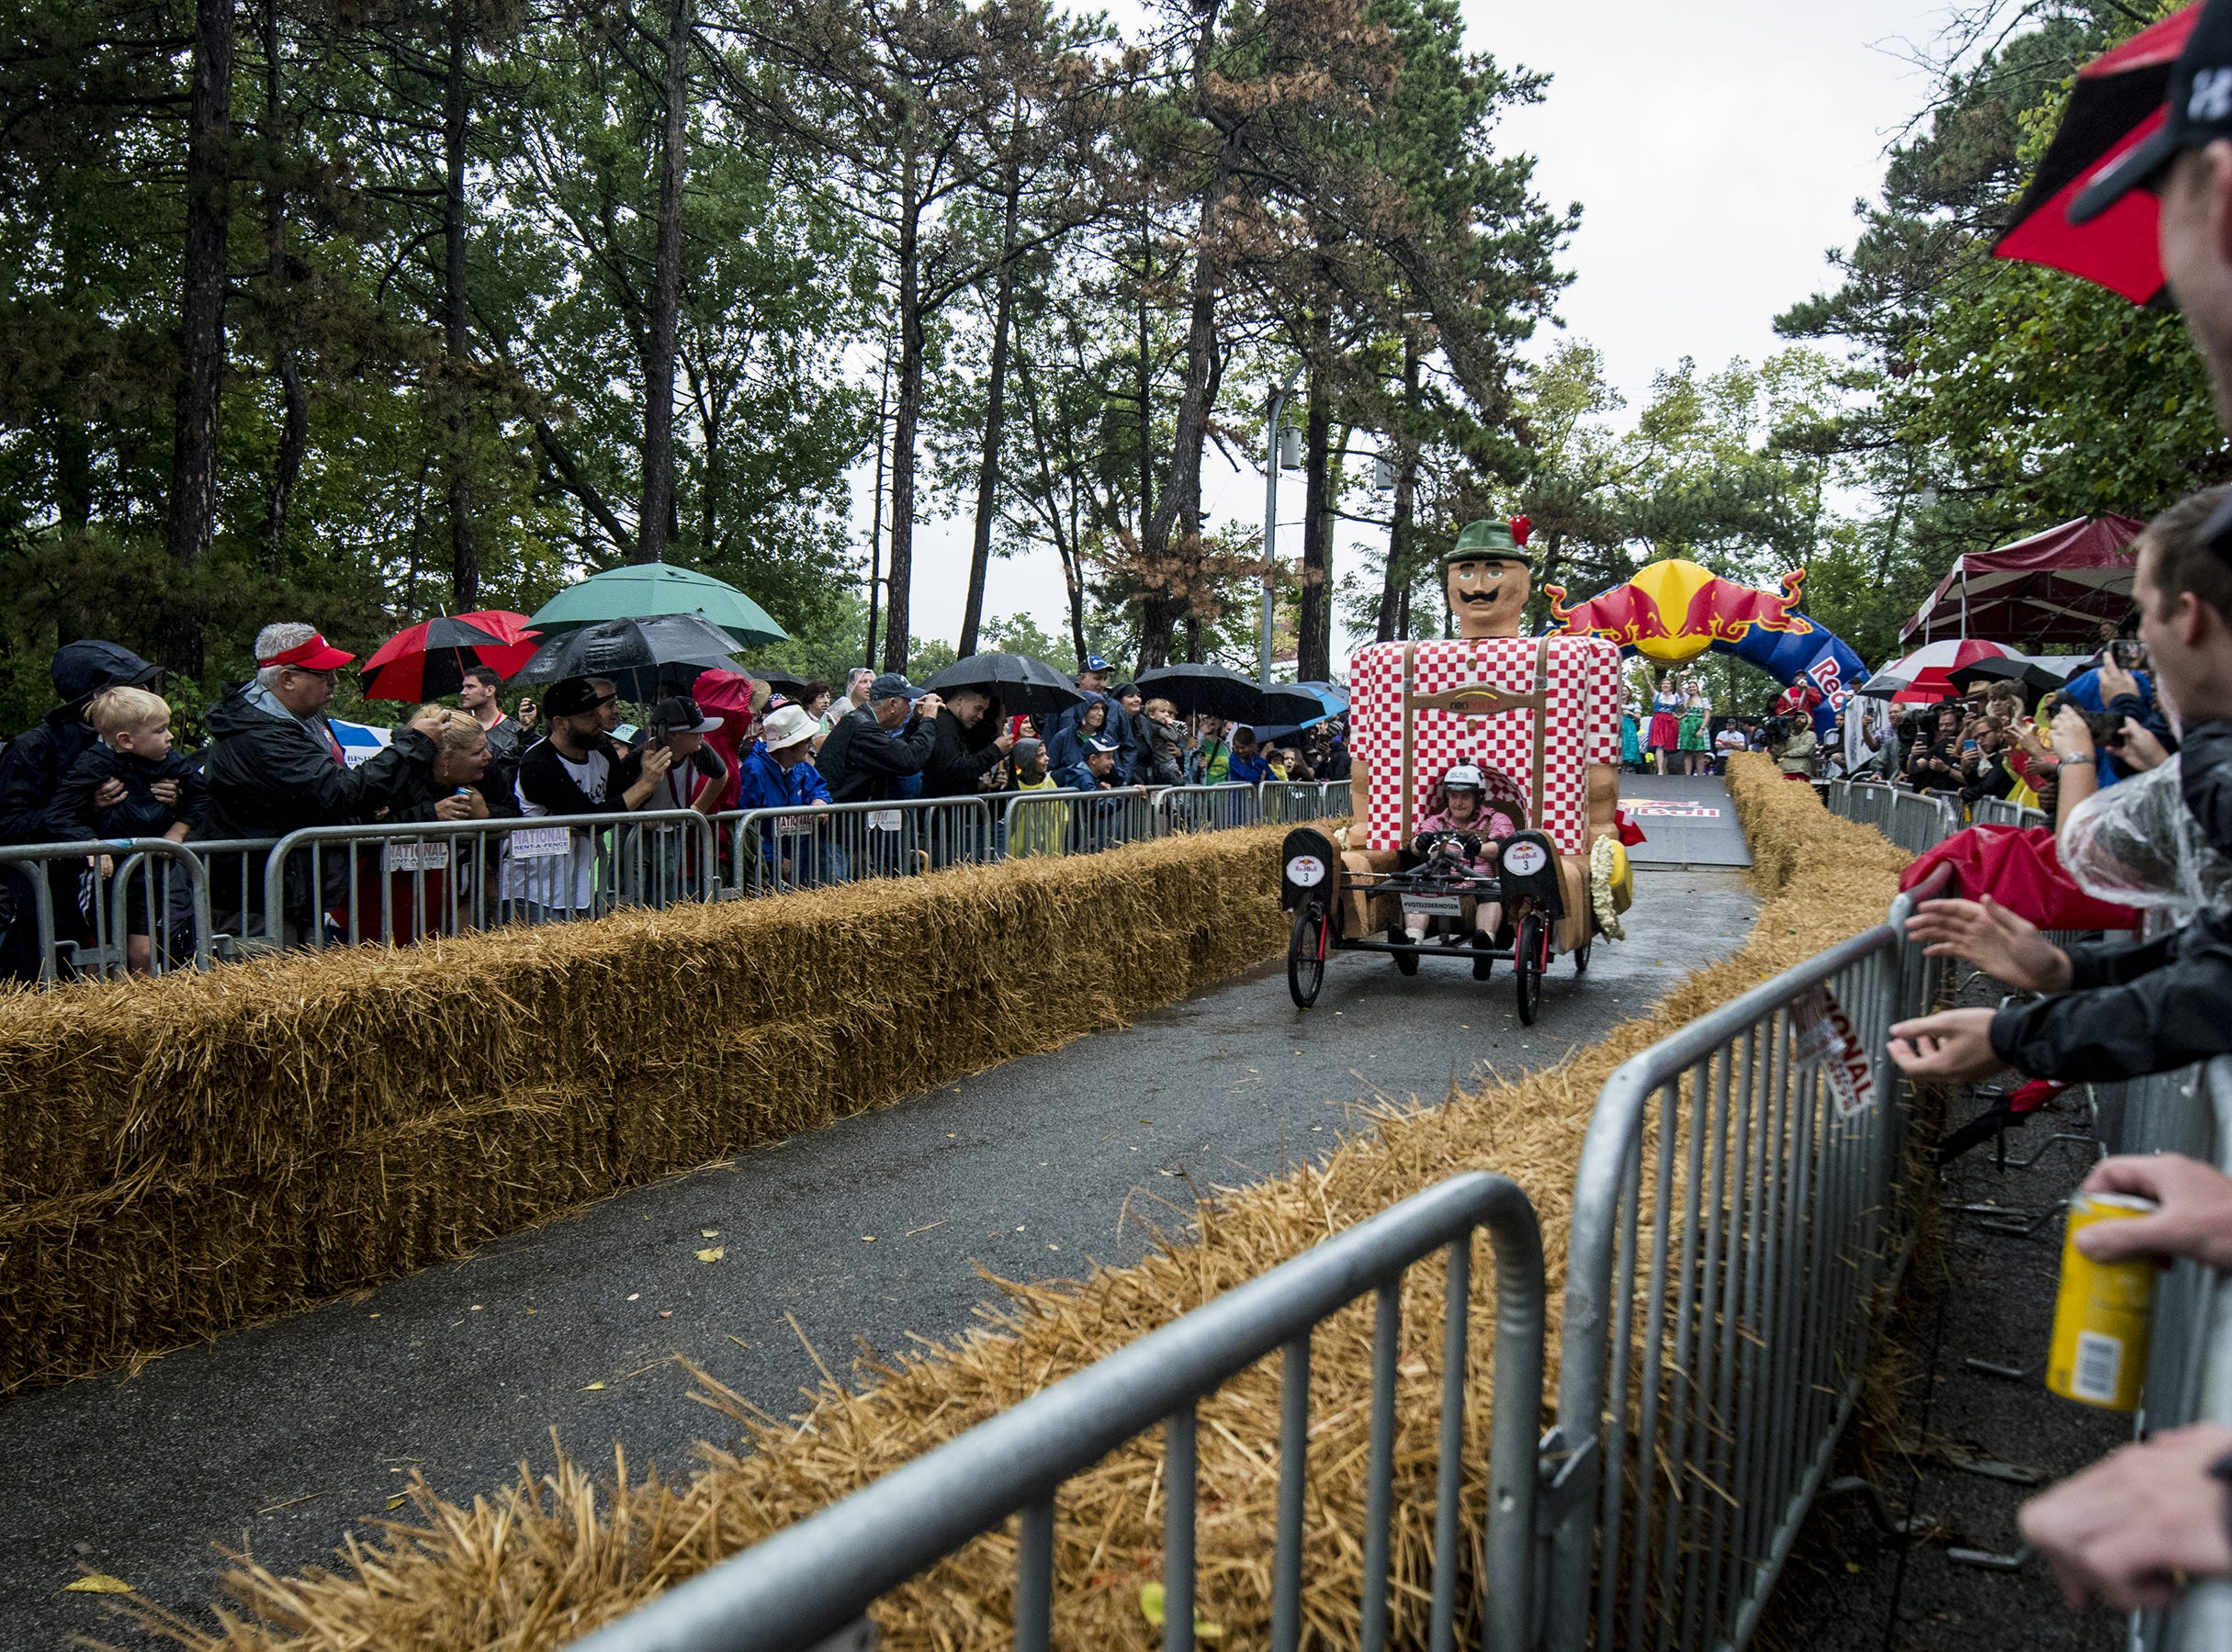 An Oktoberfest-inspired soapbox car makes its way down Martin Drive in Eden Park during the Red Bull Soapbox Derby Saturday, September 8, 2018 in Cincinnati, Ohio.